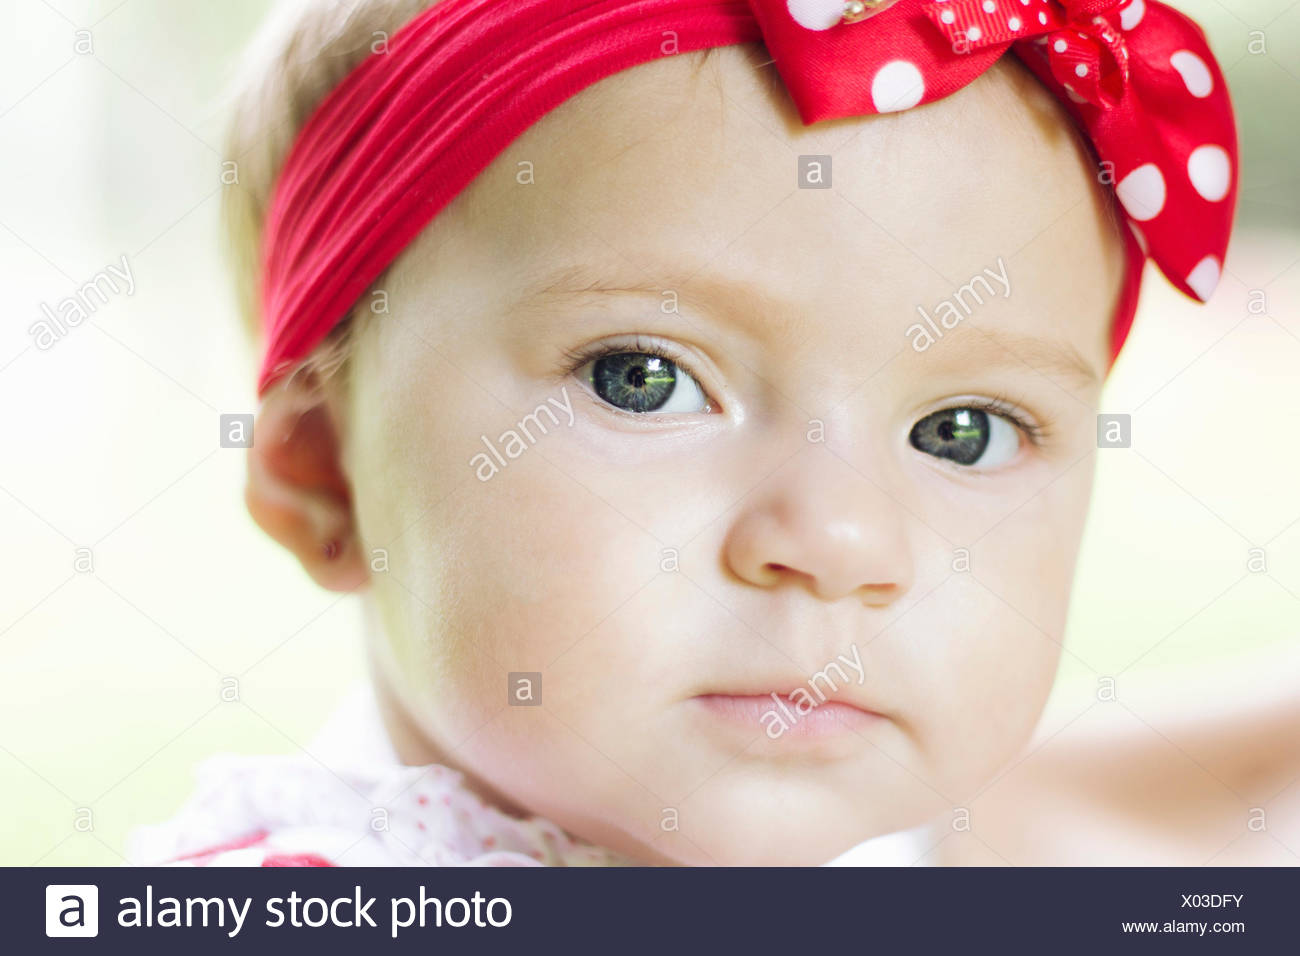 Close-up Portrait Of A Pretty Baby Girl Stockbild